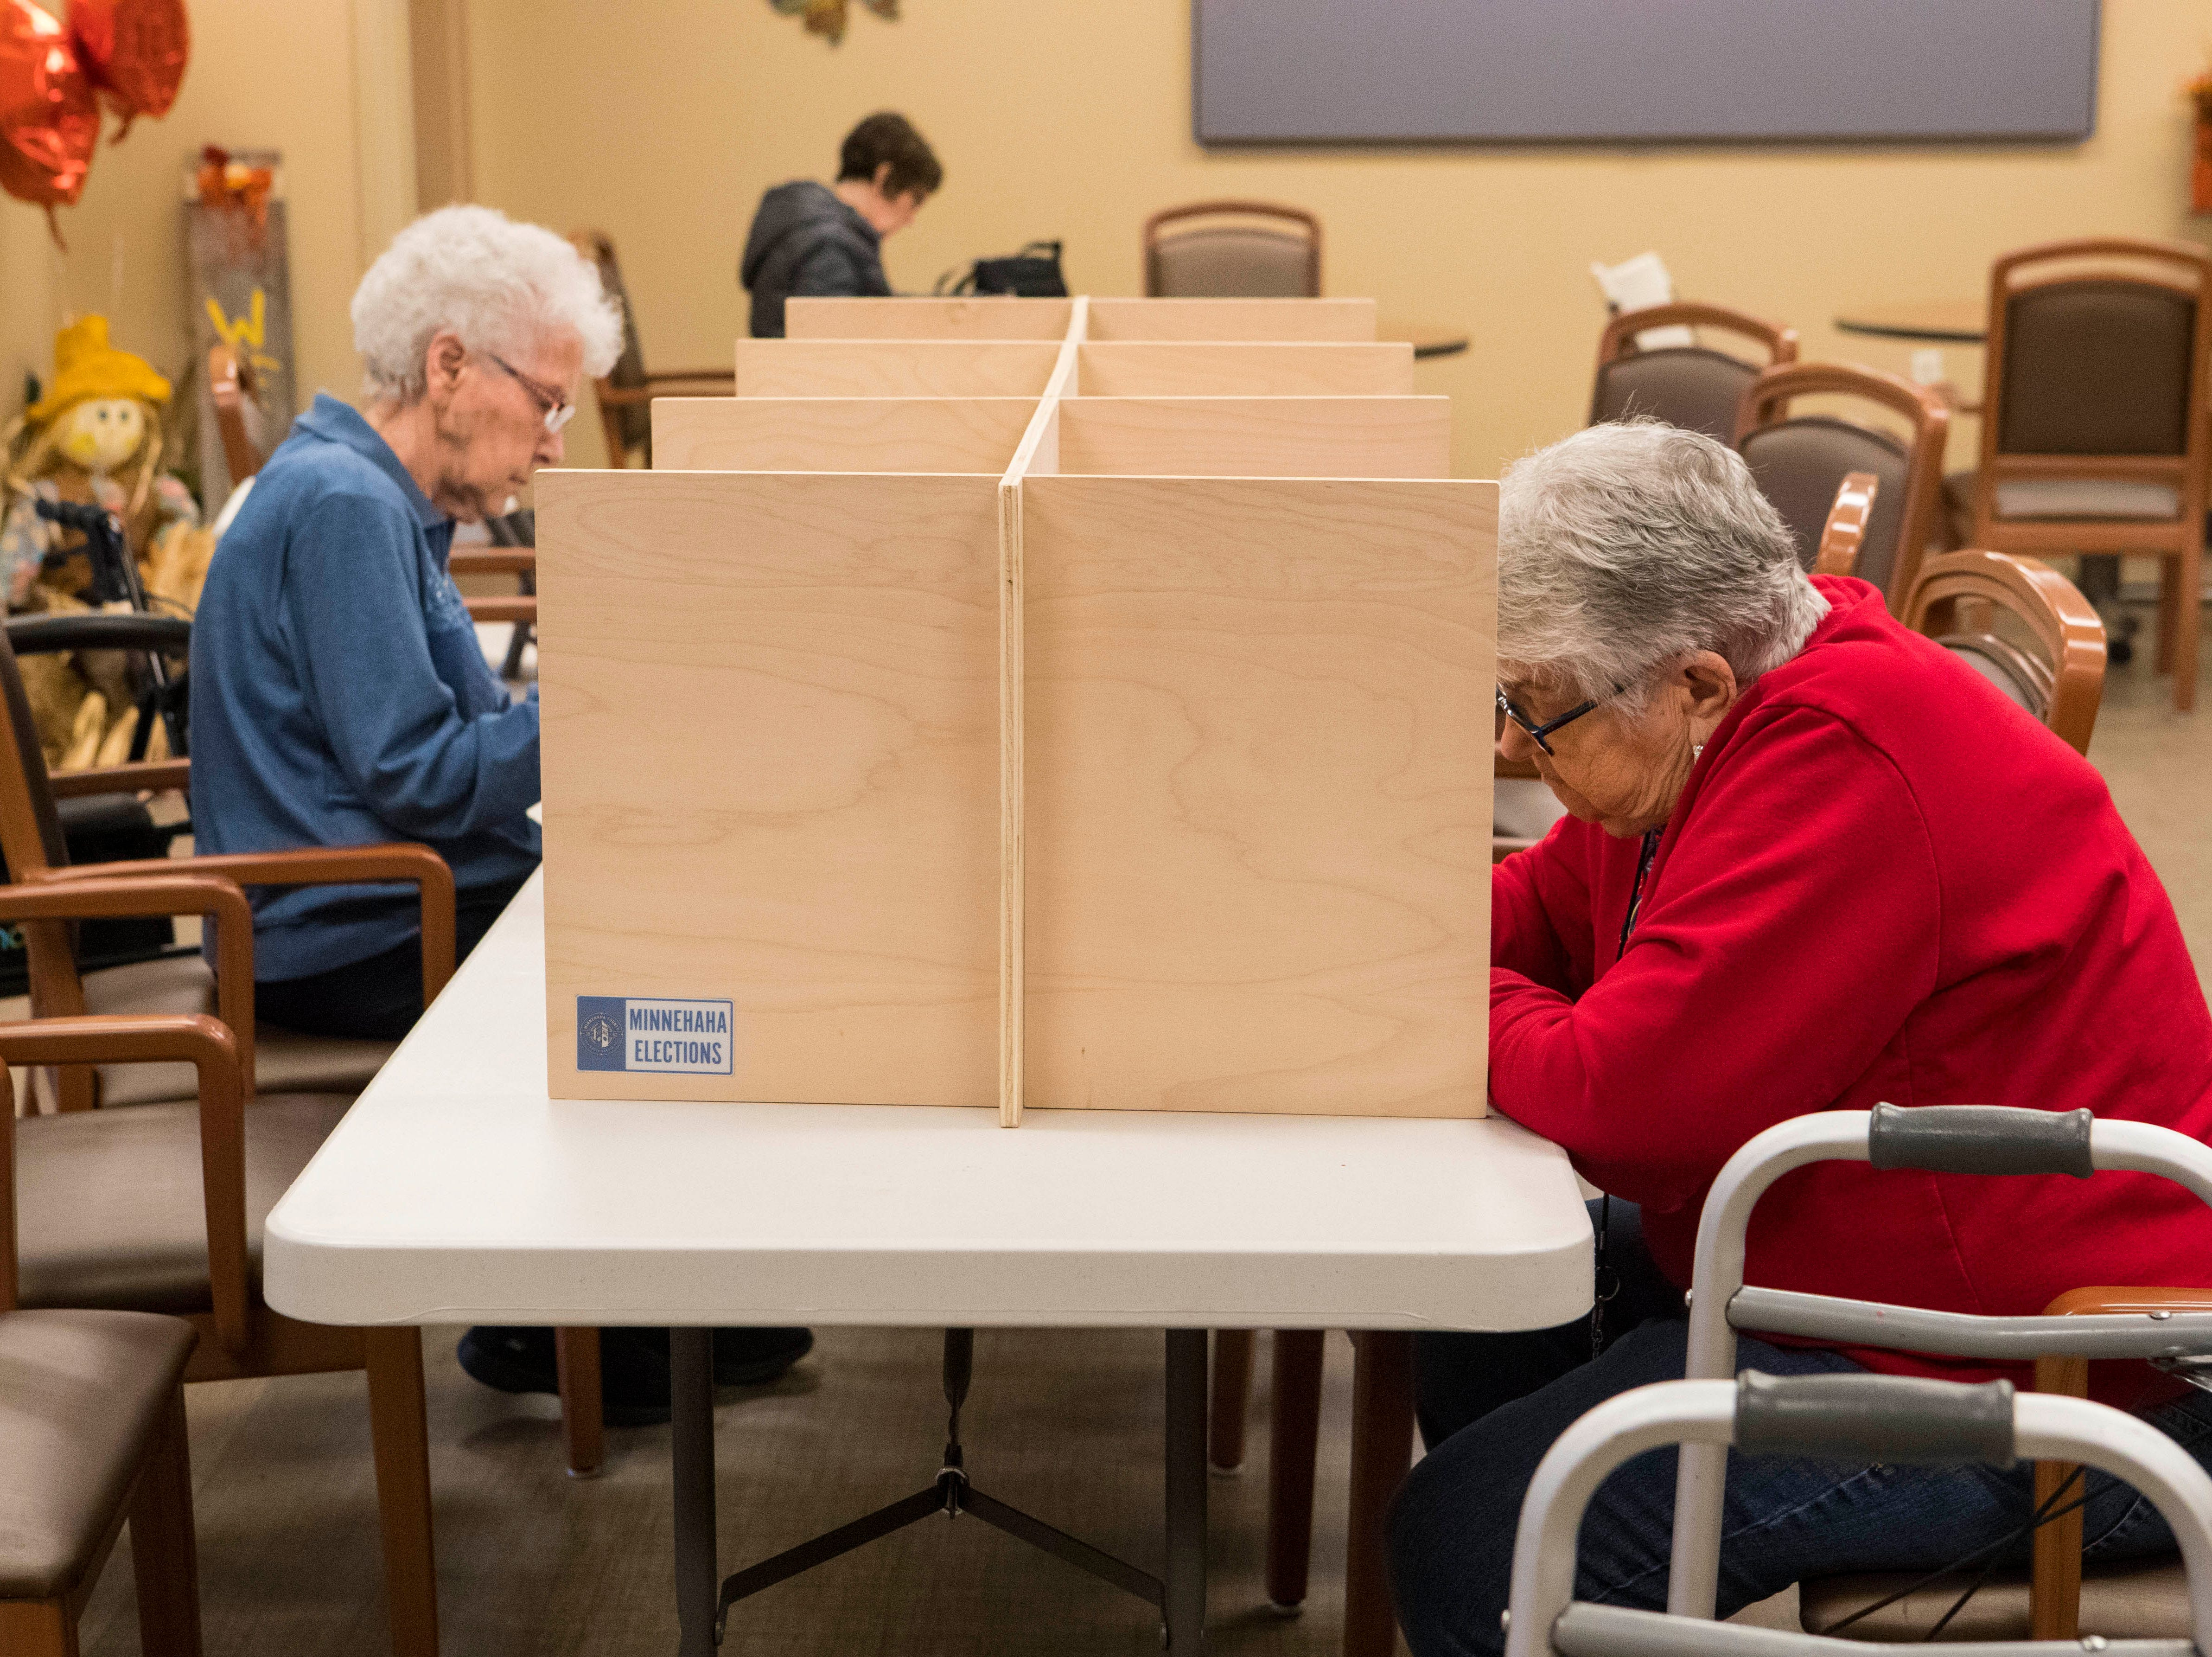 Voters fill out their ballots at Avera Prince of Peace Retirement Community in Sioux Falls, S.D., Tuesday, Nov. 6, 2018.